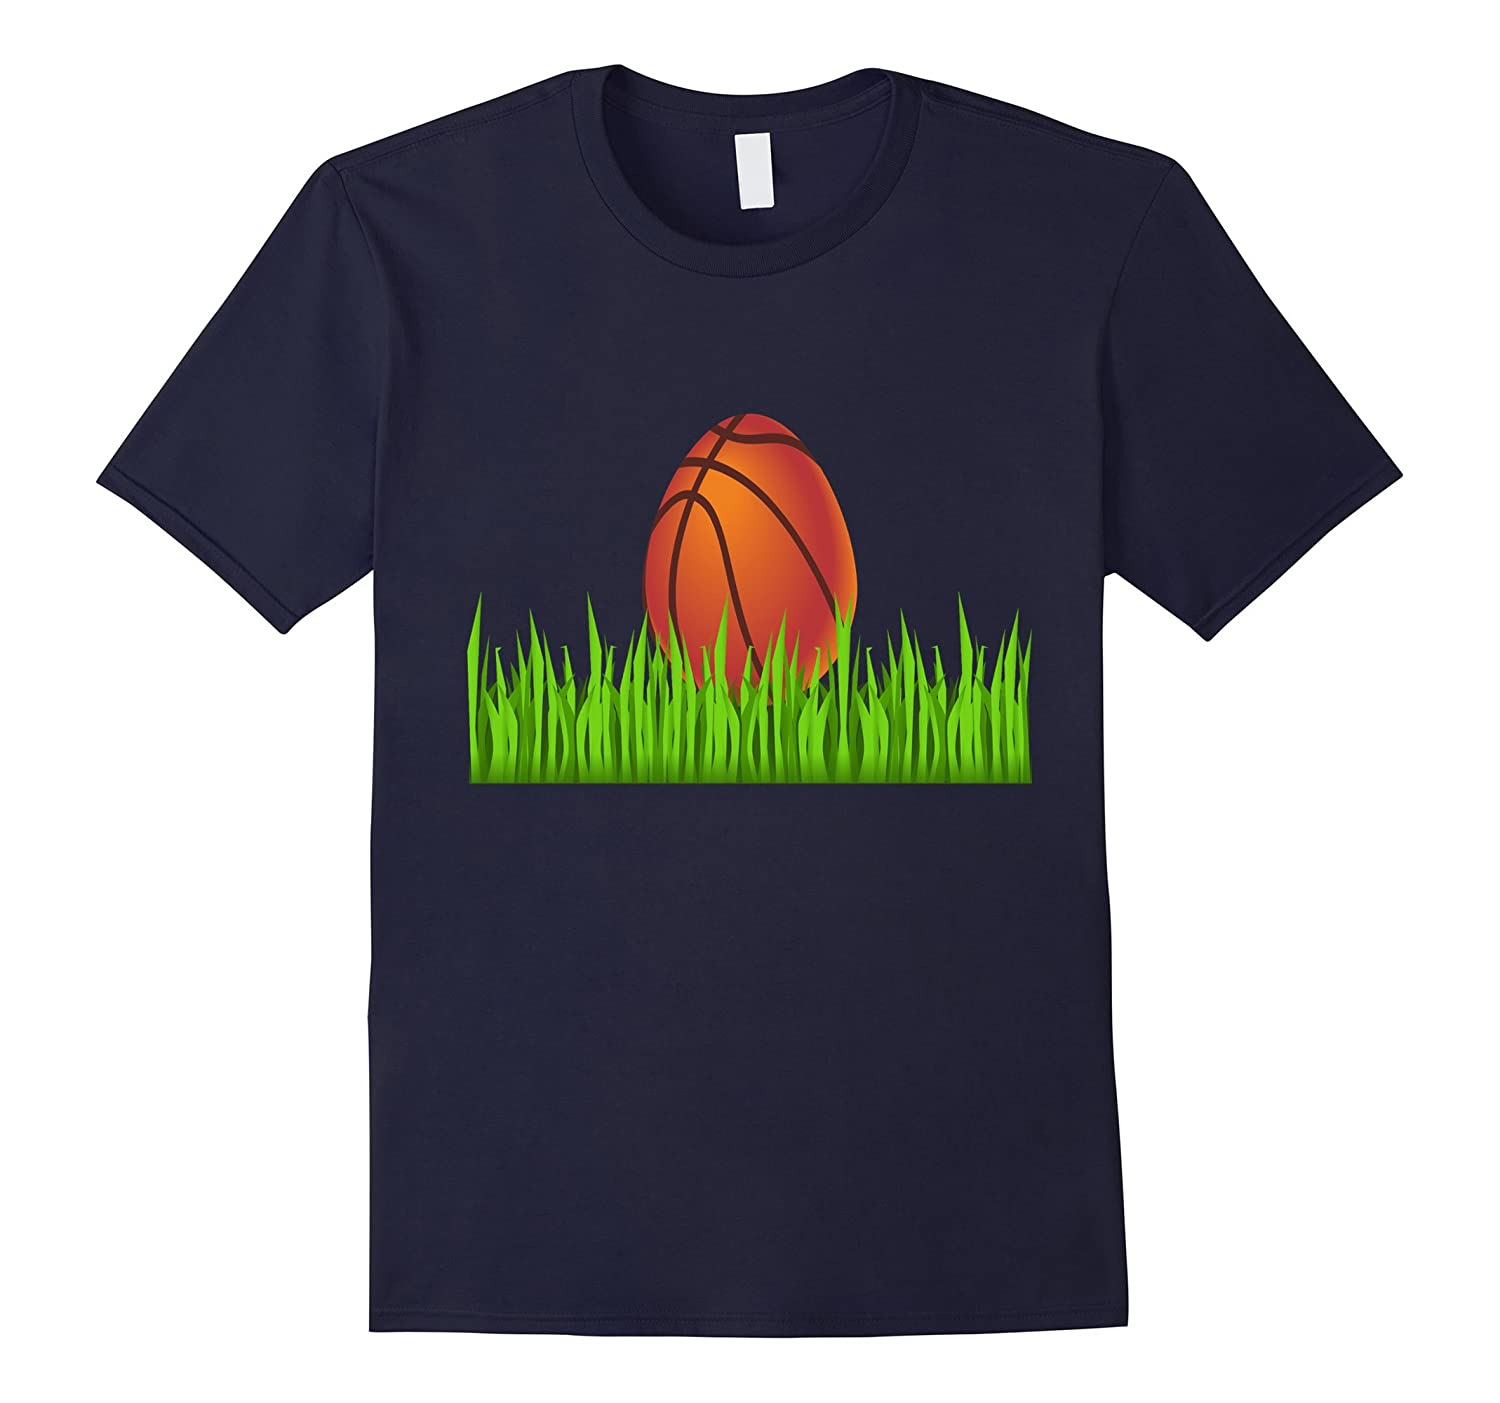 Basketball Egg Shirt for Boys Easter Sports Ball Themed Tee-TD